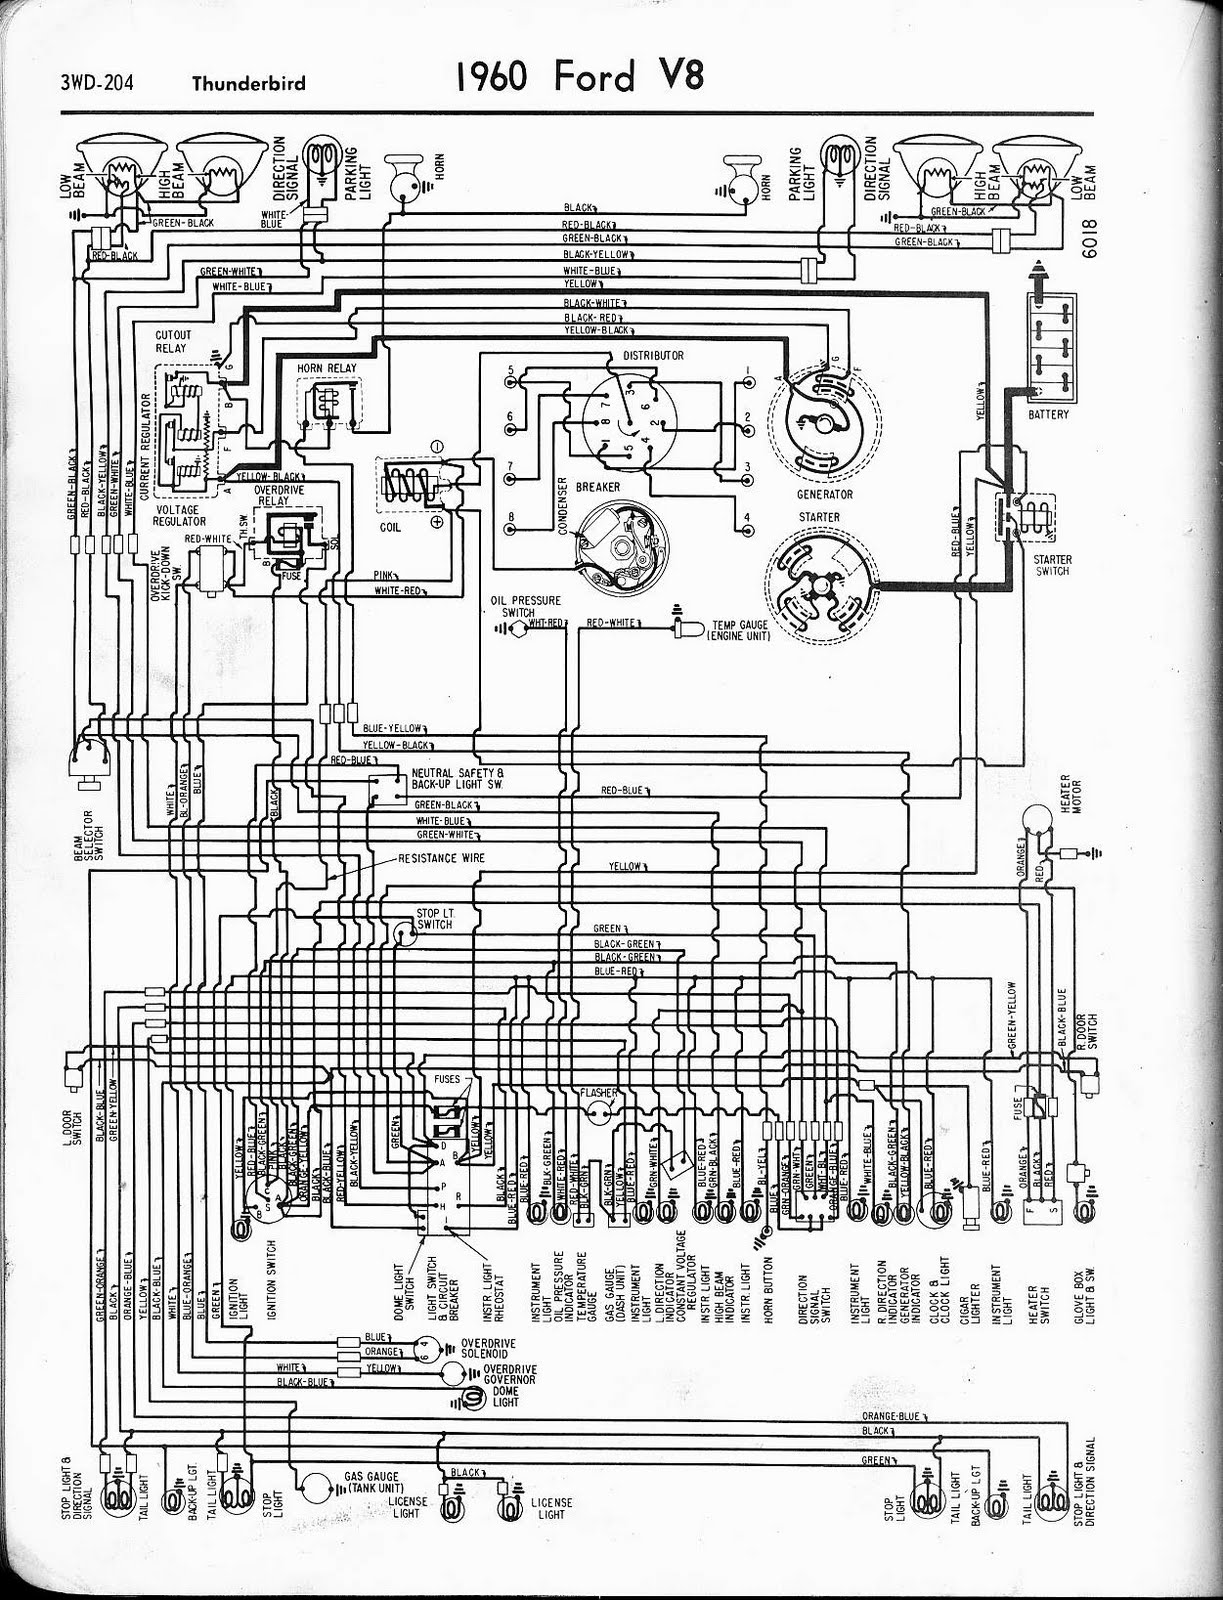 1956 ford wagon car wiring diagram wiring diagram library  1956 ford car wiring diagram #6